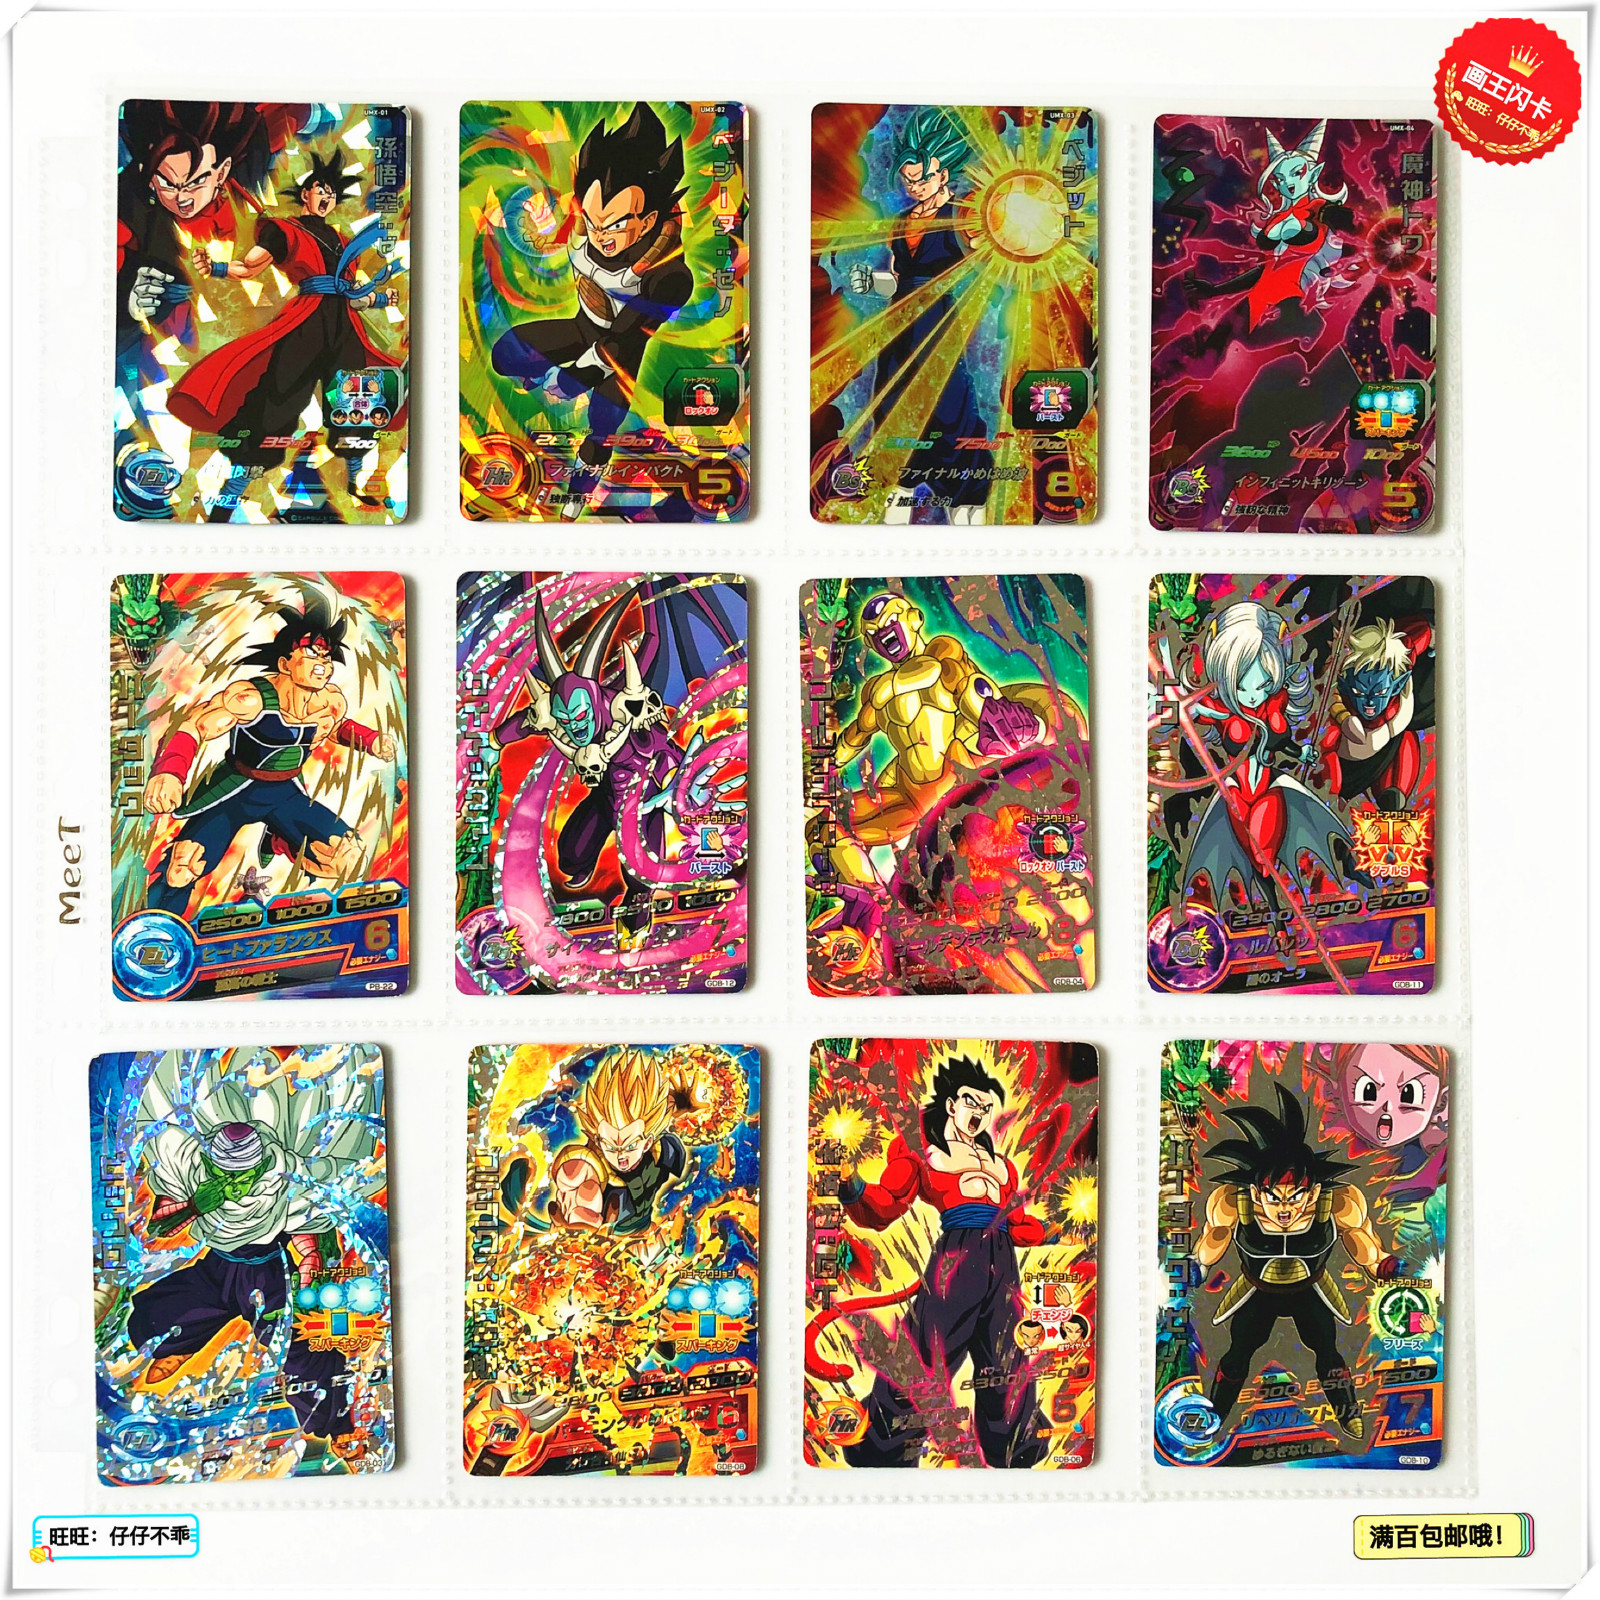 Japan Original Dragon Ball Hero Card UMX GDB Goku Toys Hobbies Collectibles Game Collection Anime Cards